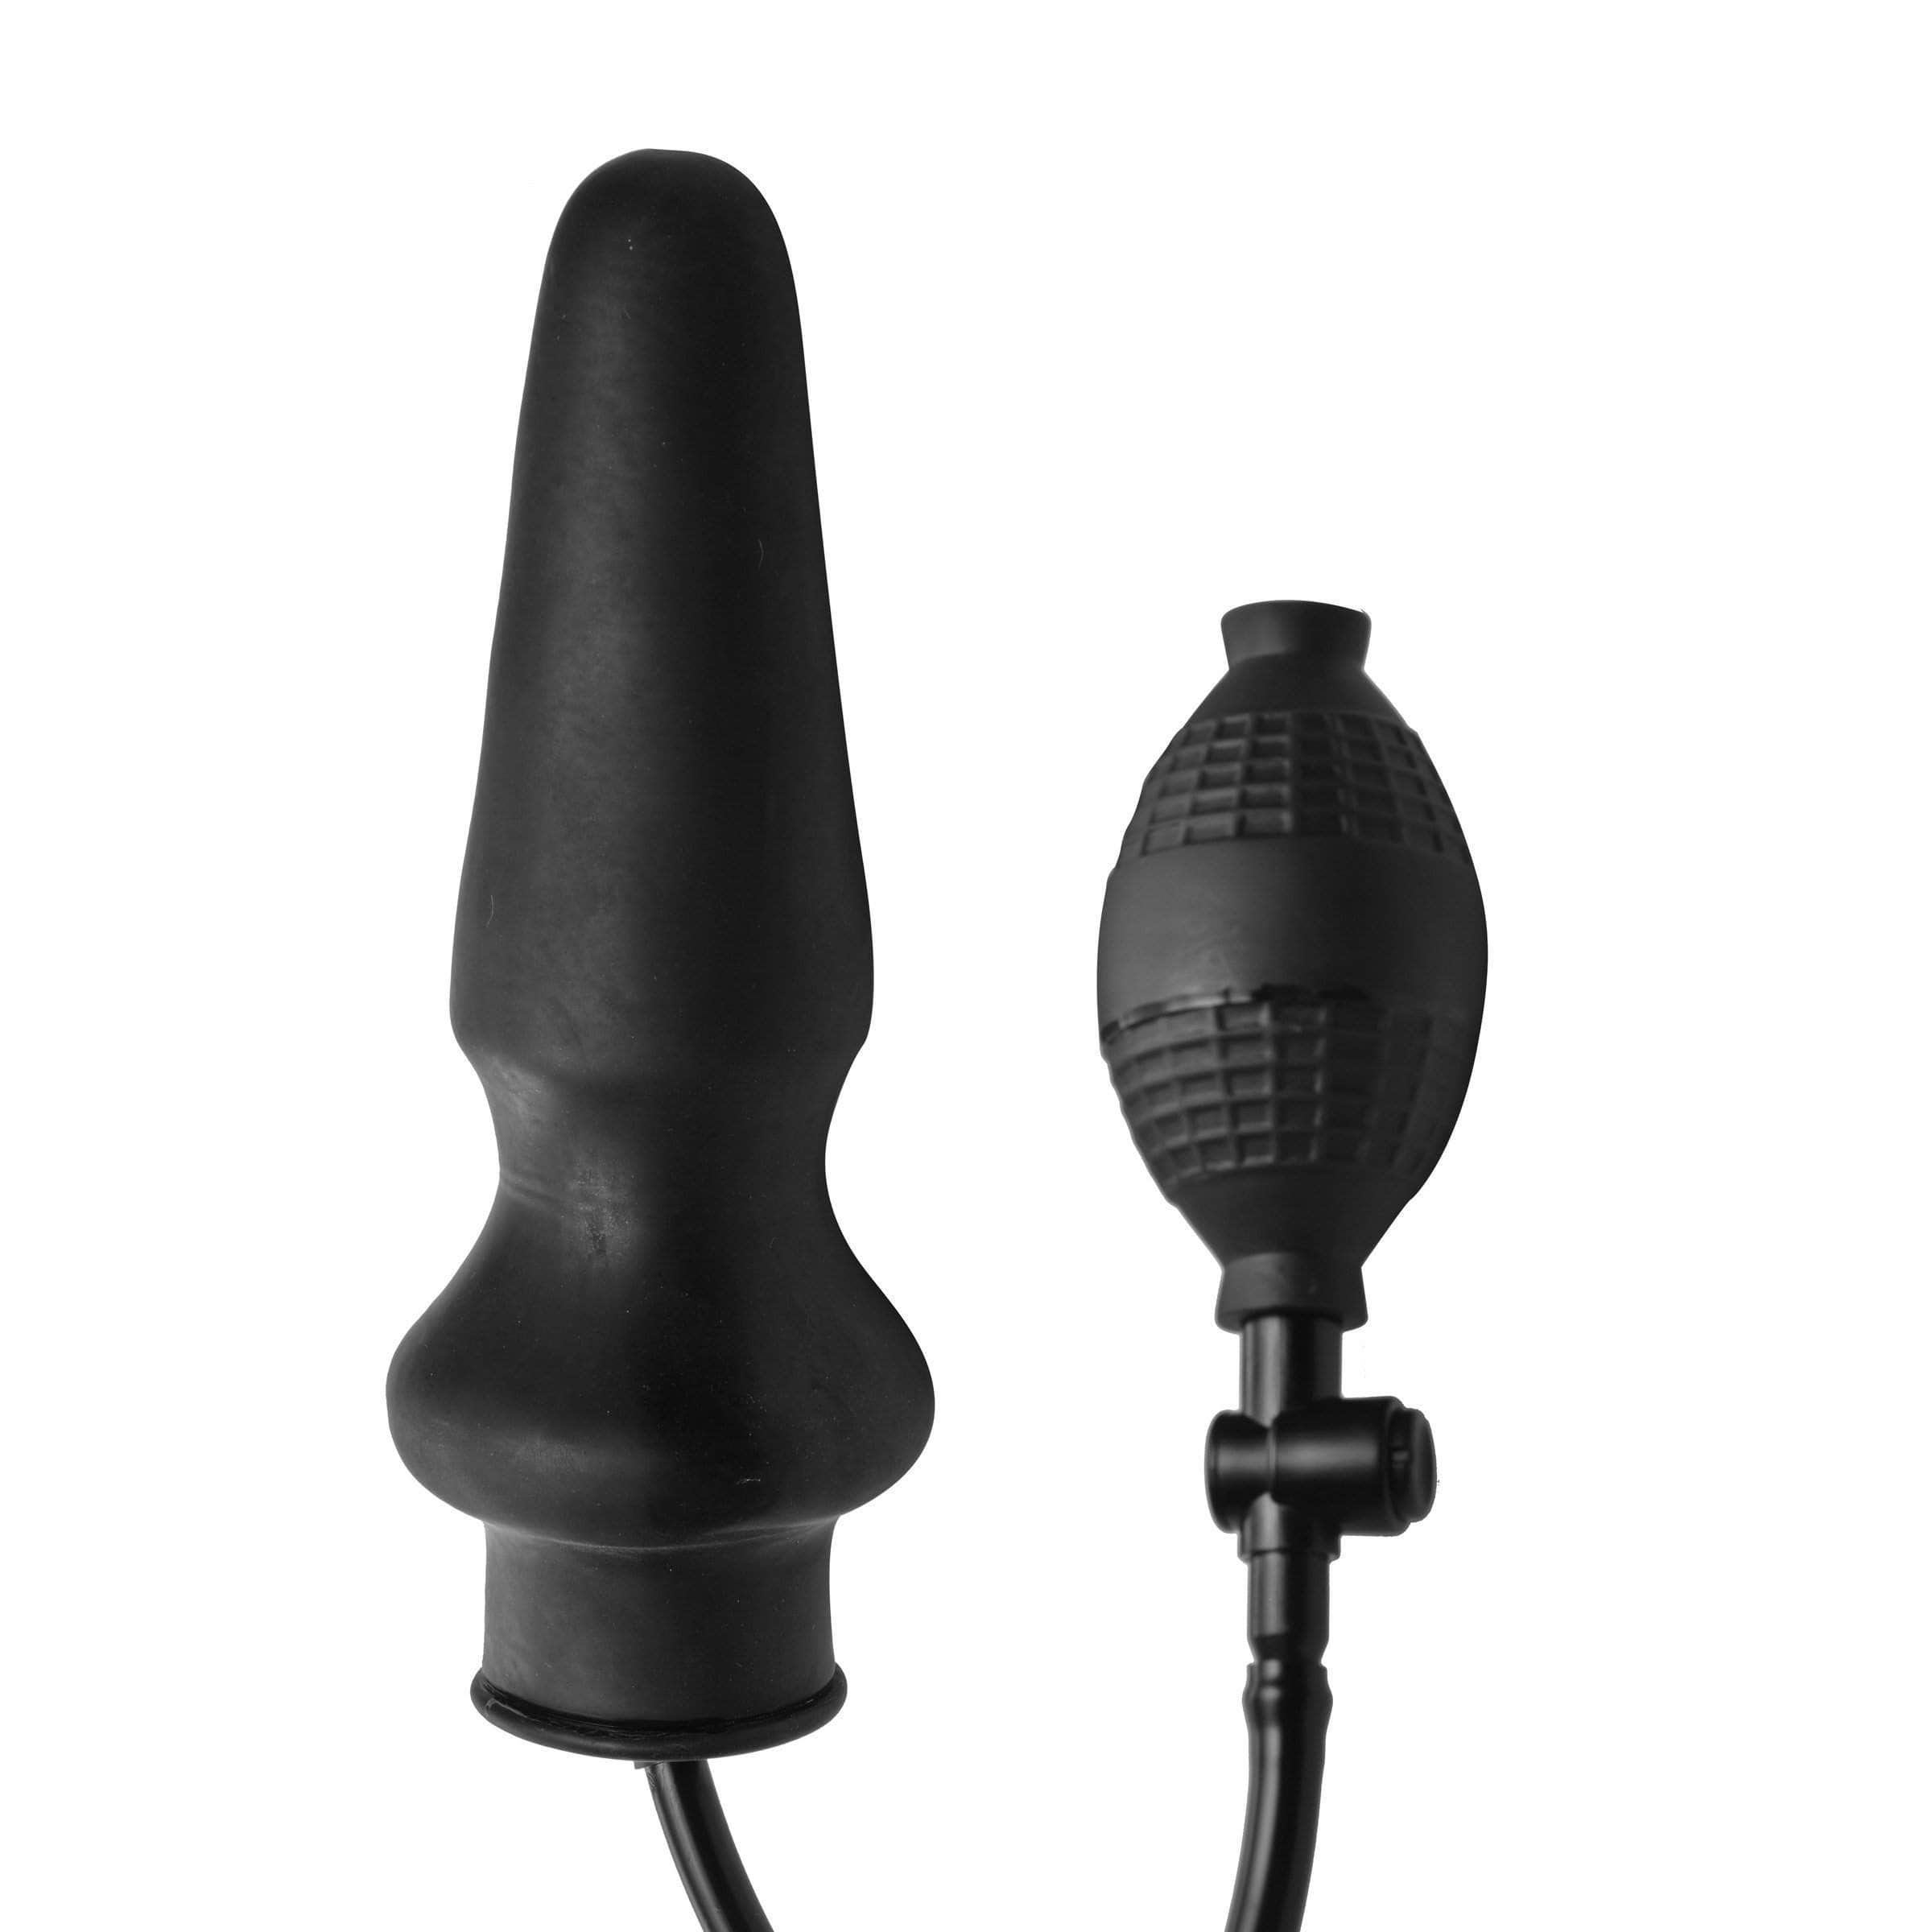 Expand Xl Inflatable Anal Plug